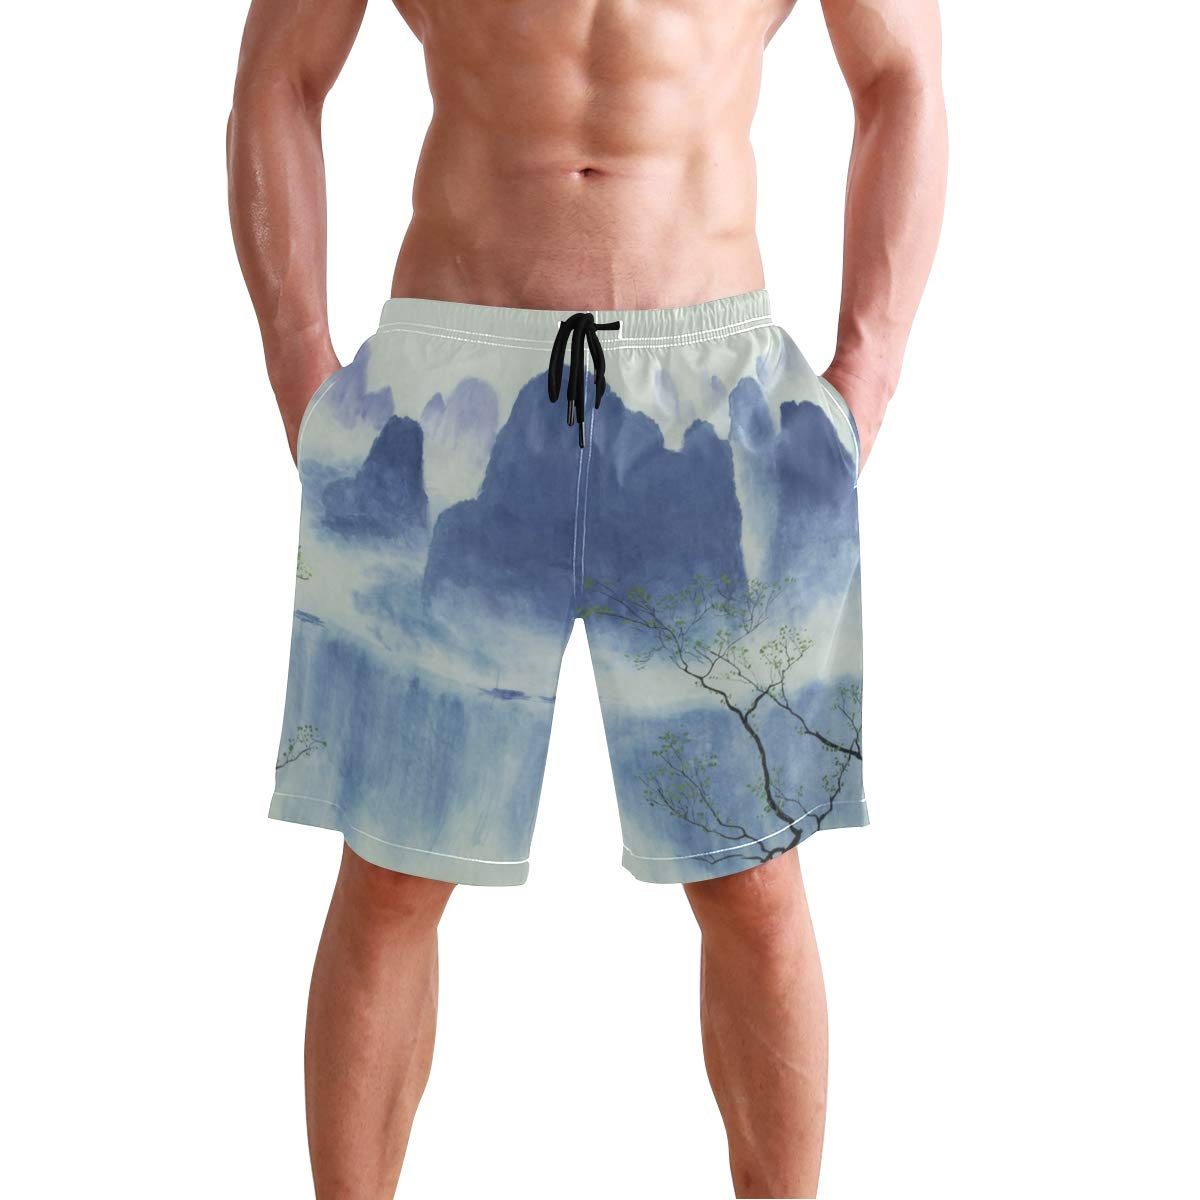 JERECY Mens Swim Trunks Chinese New Year Picture Fuwa Quick Dry Board Shorts with Drawstring and Pockets